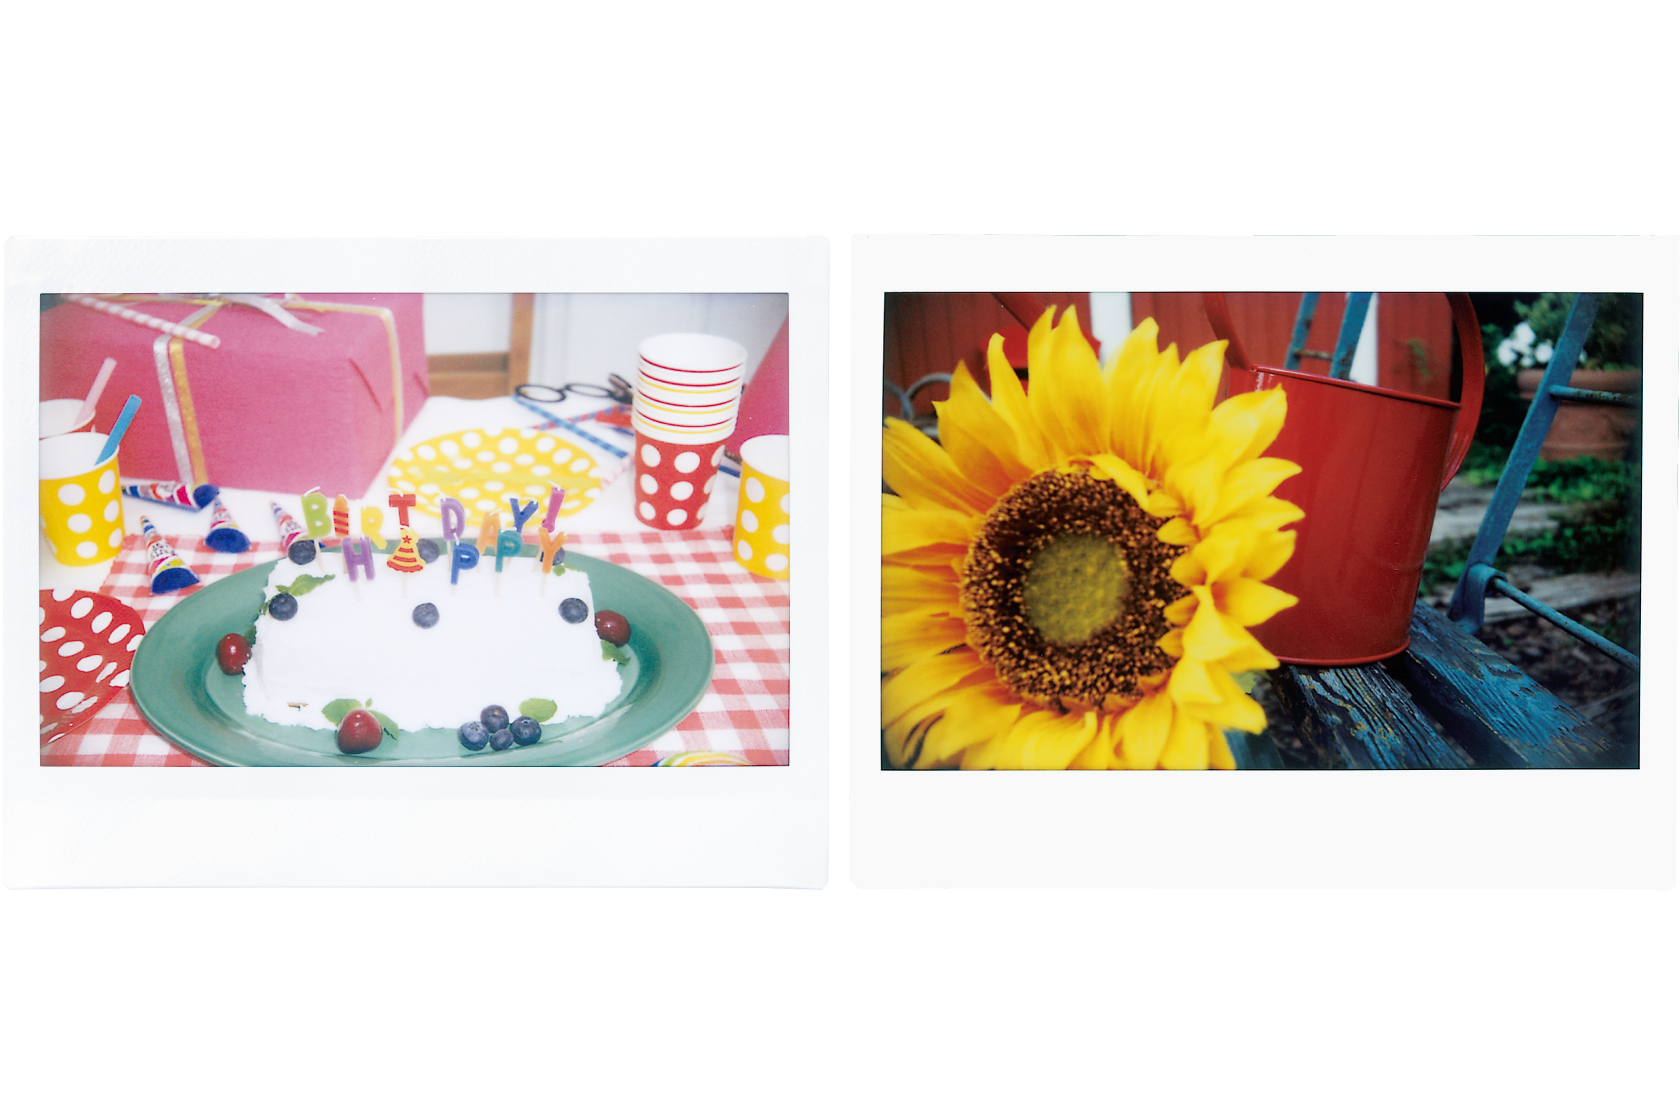 Image of a close-up photos of birthday cake and close-up photos of a flower